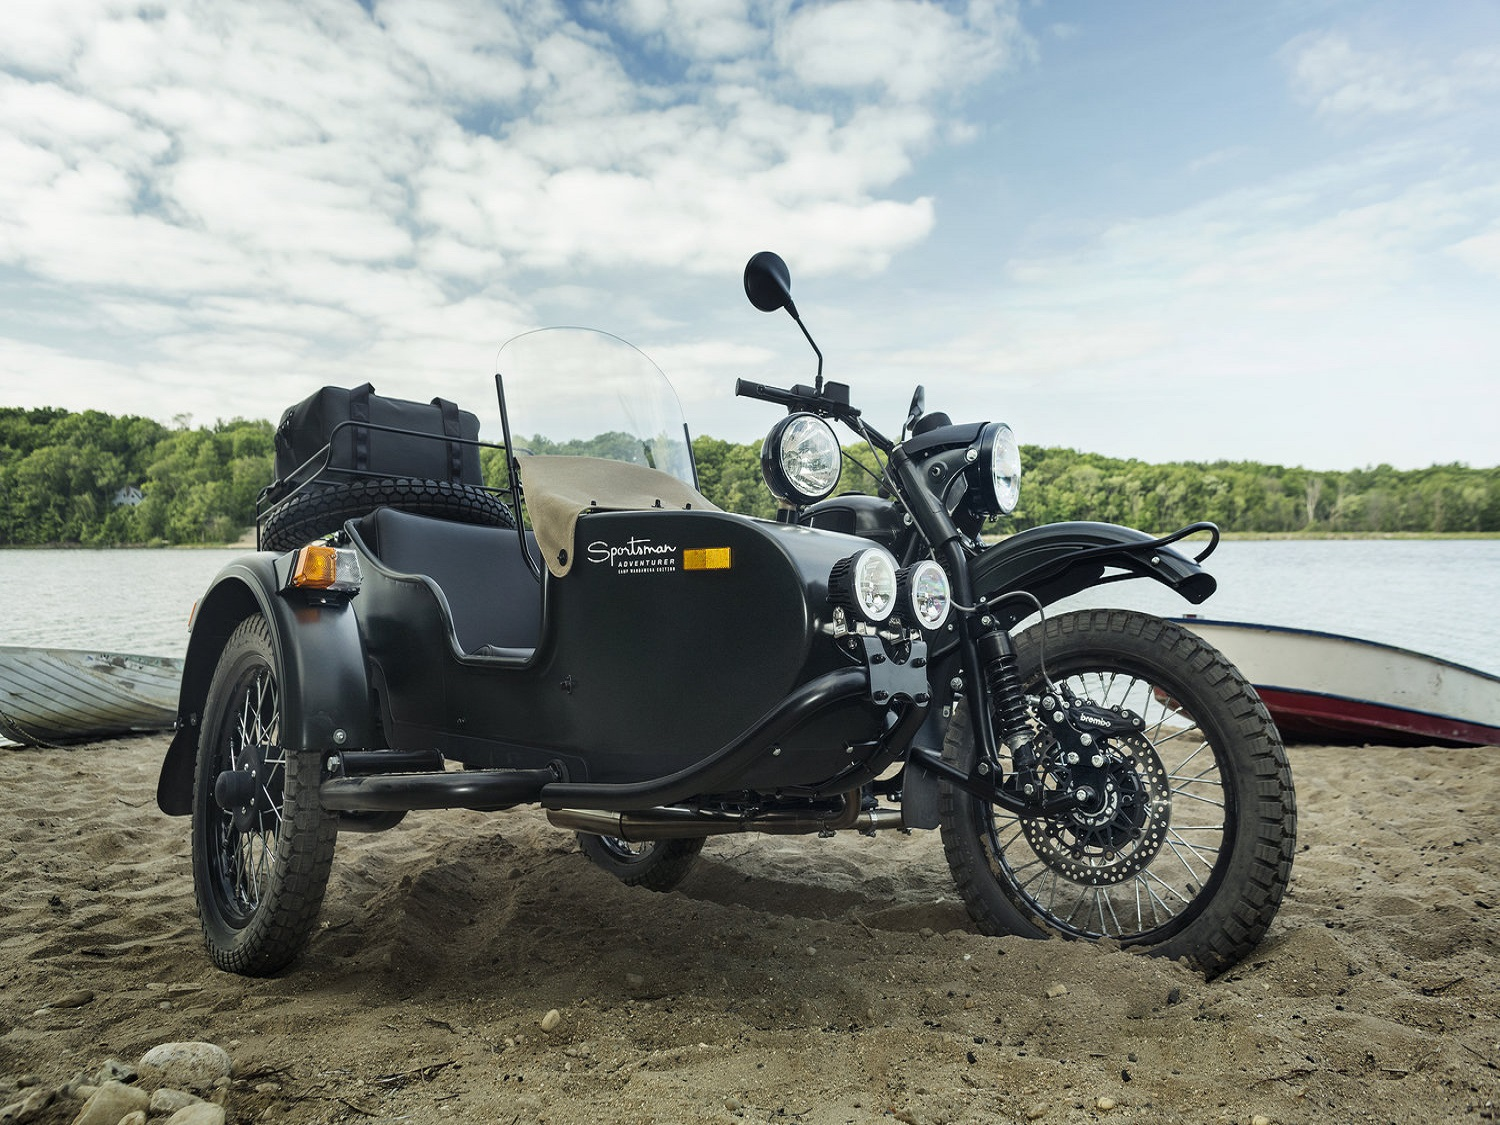 Rosso Corsa Gallery 187 Ural Motorcycles 187 2017 Ural Gear Up